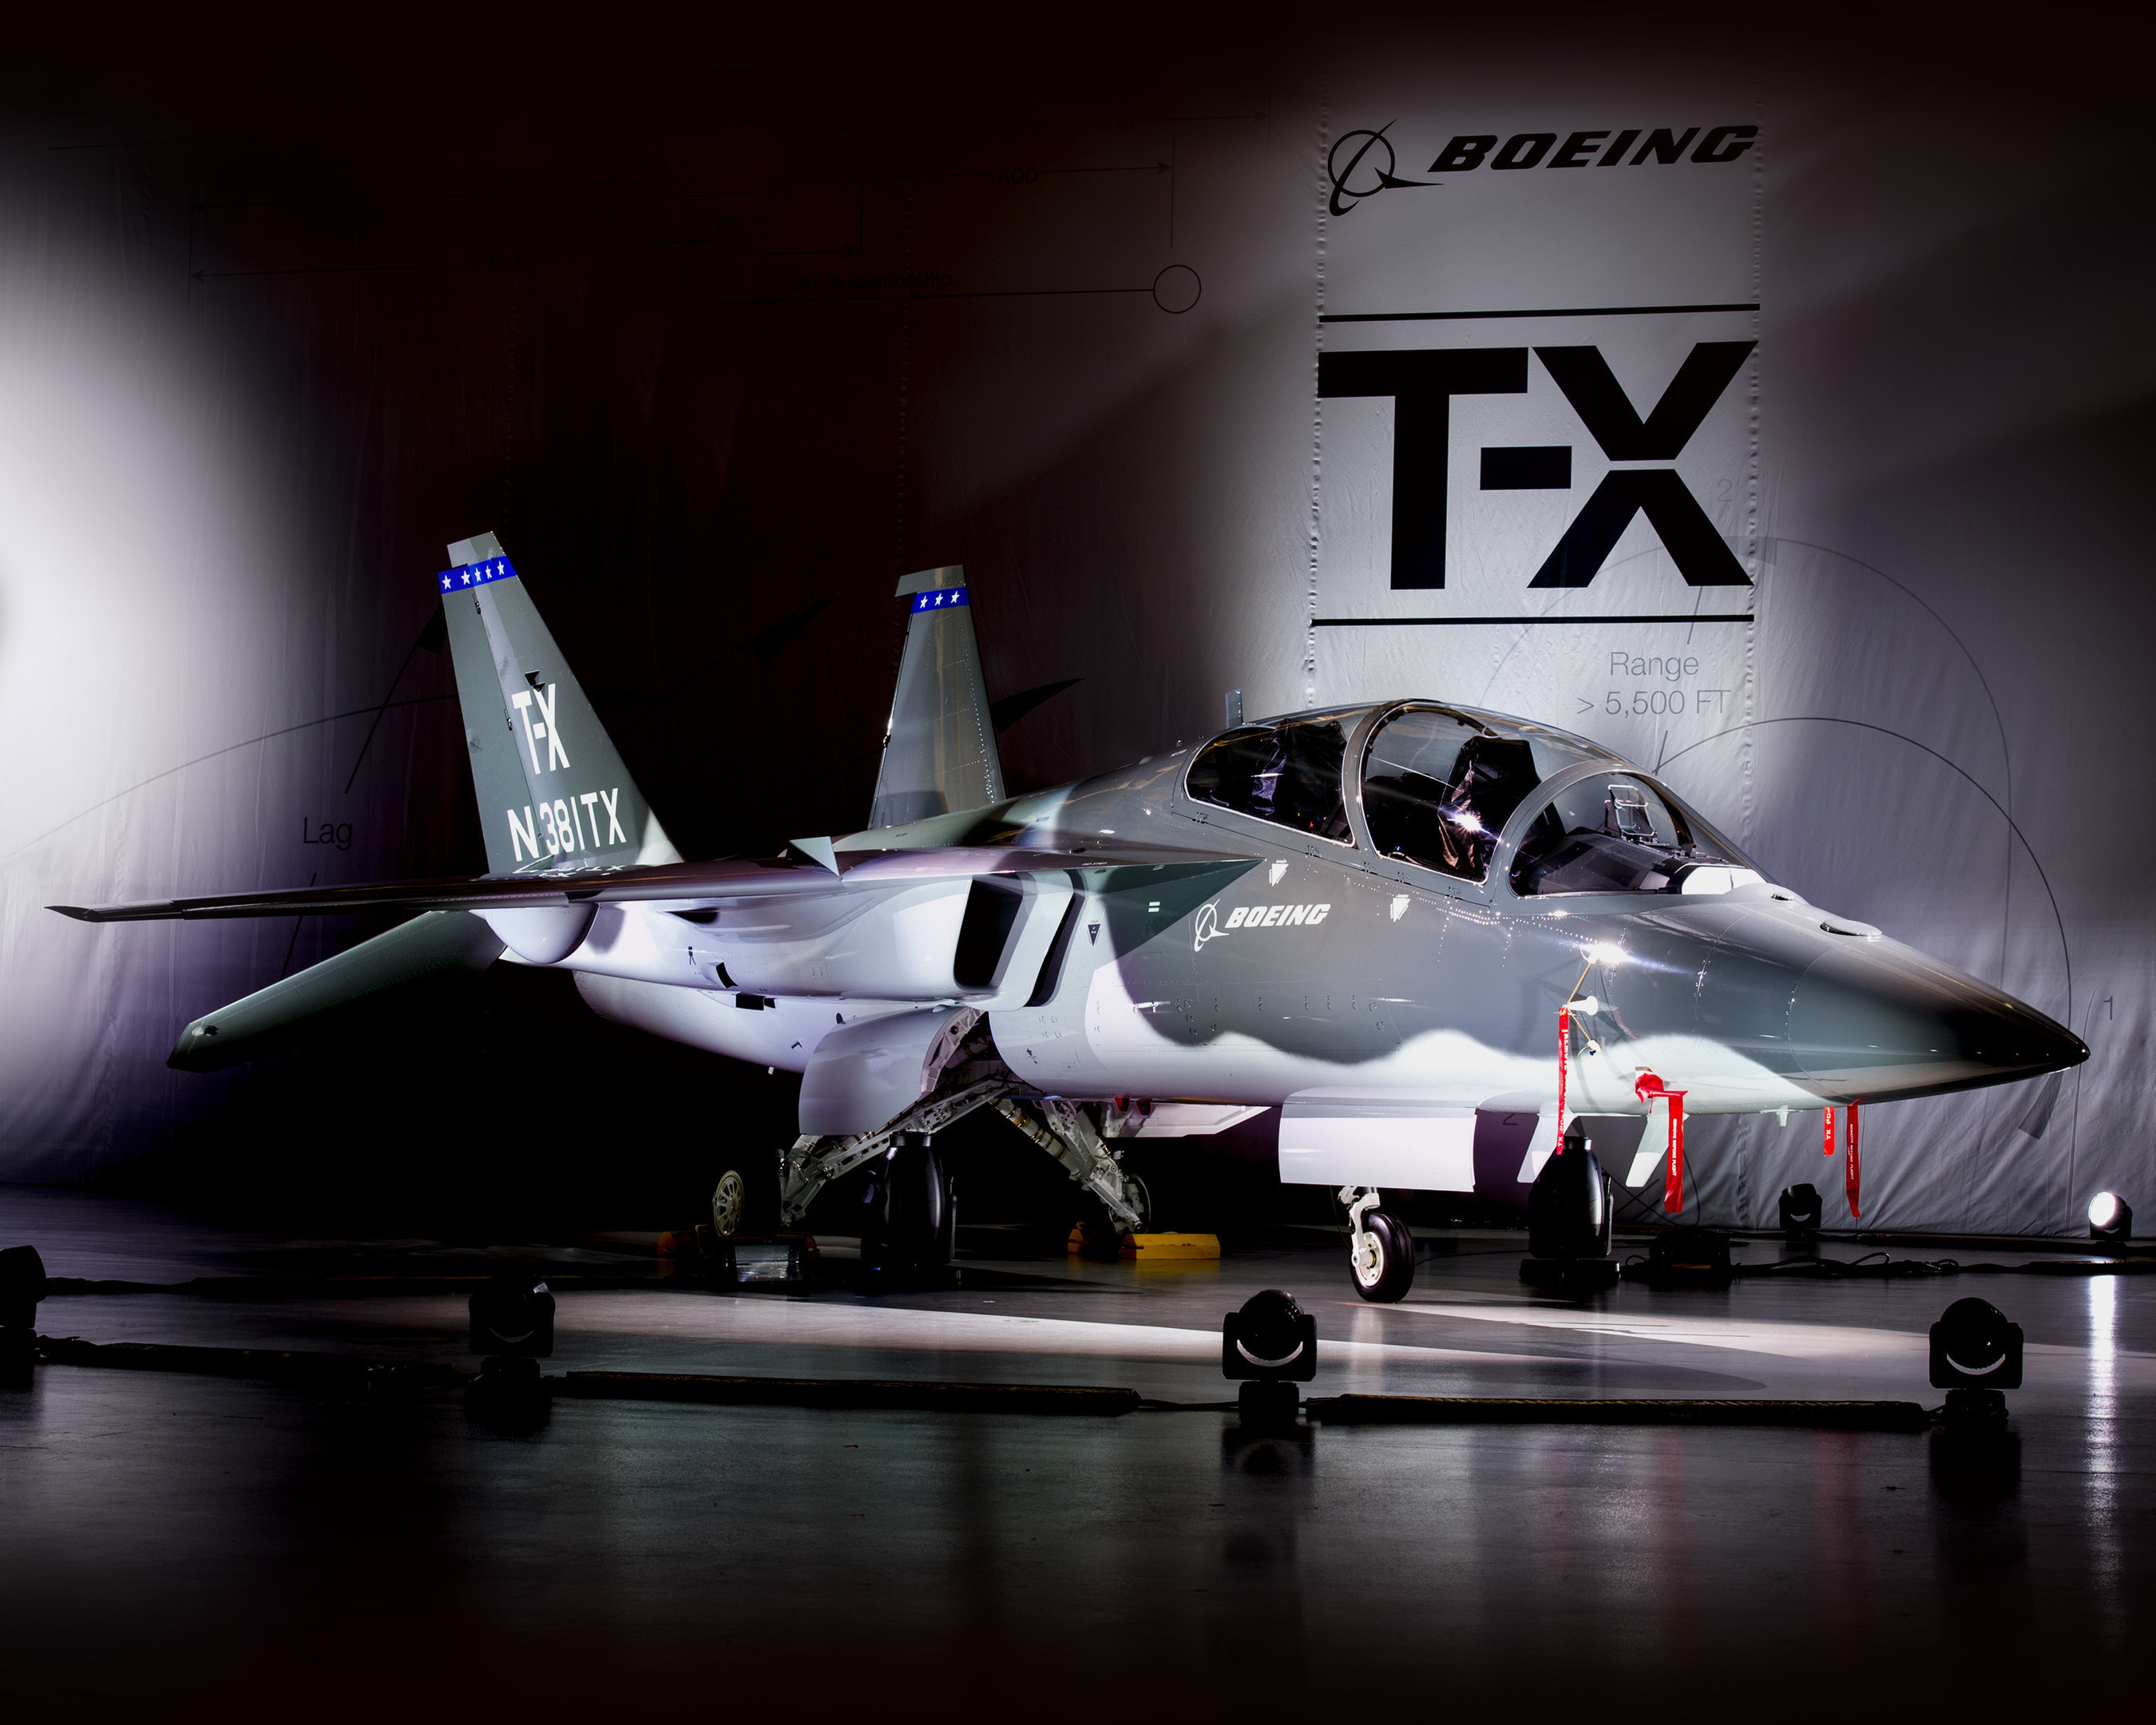 The new Boeing T-X